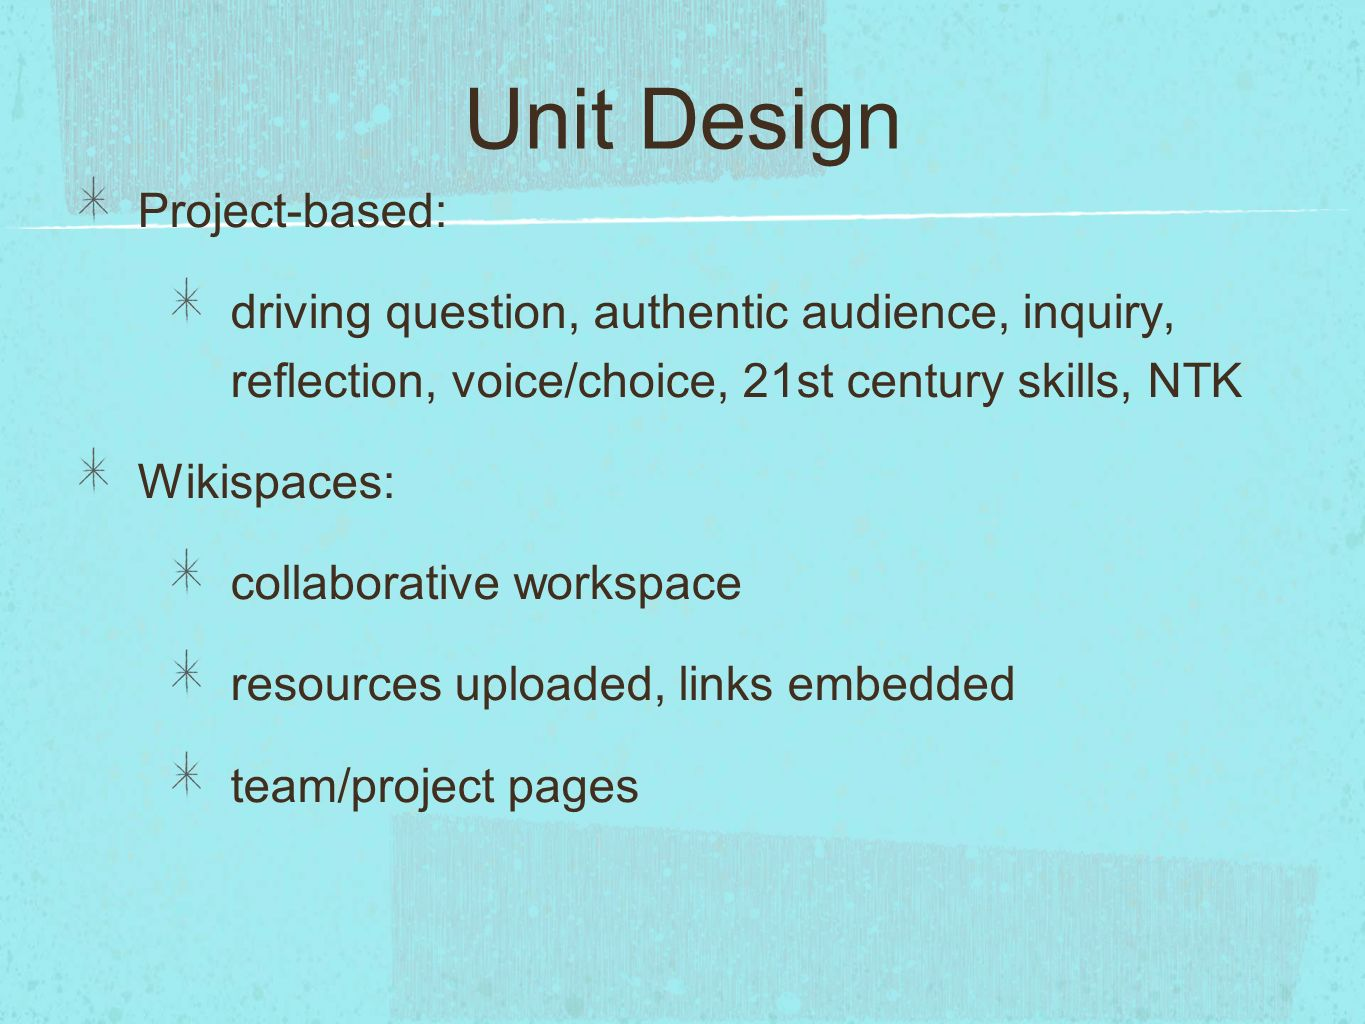 Unit Design Project-based: driving question, authentic audience, inquiry, reflection, voice/choice, 21st century skills, NTK Wikispaces: collaborative workspace resources uploaded, links embedded team/project pages